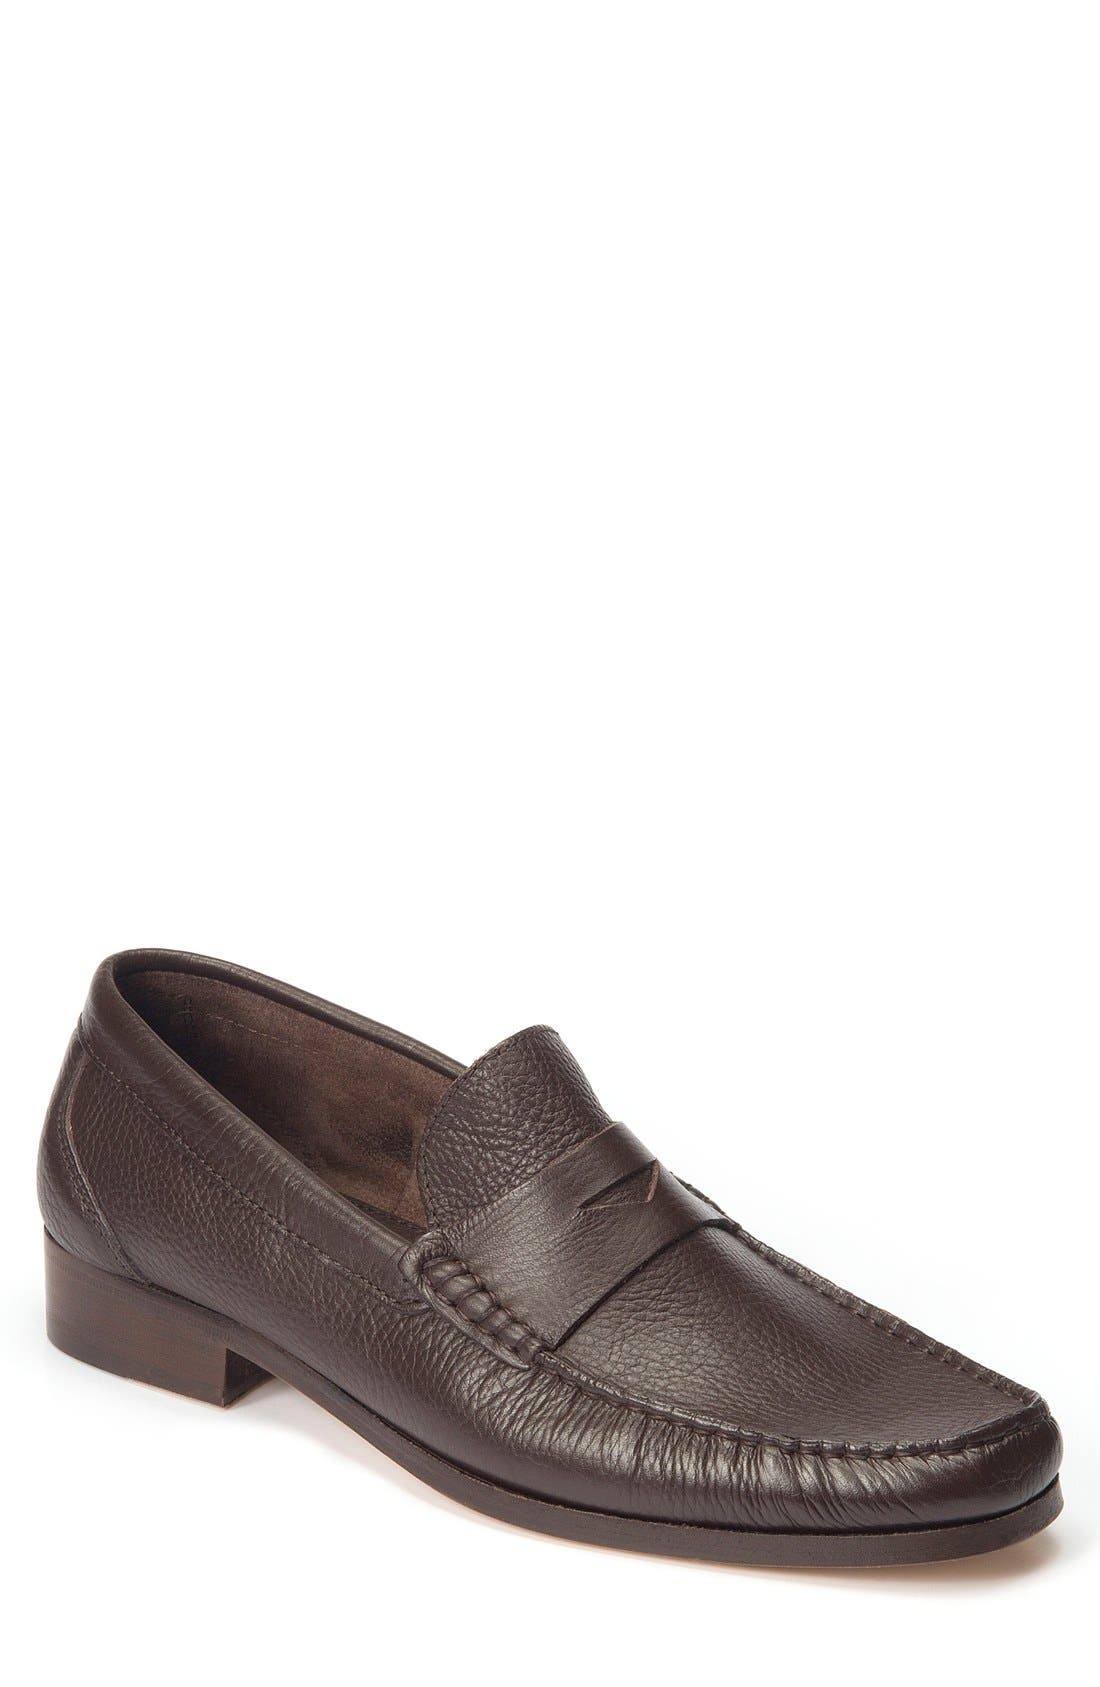 Alternate Image 1 Selected - Sandro Moscoloni Segovia Penny Loafer (Men)